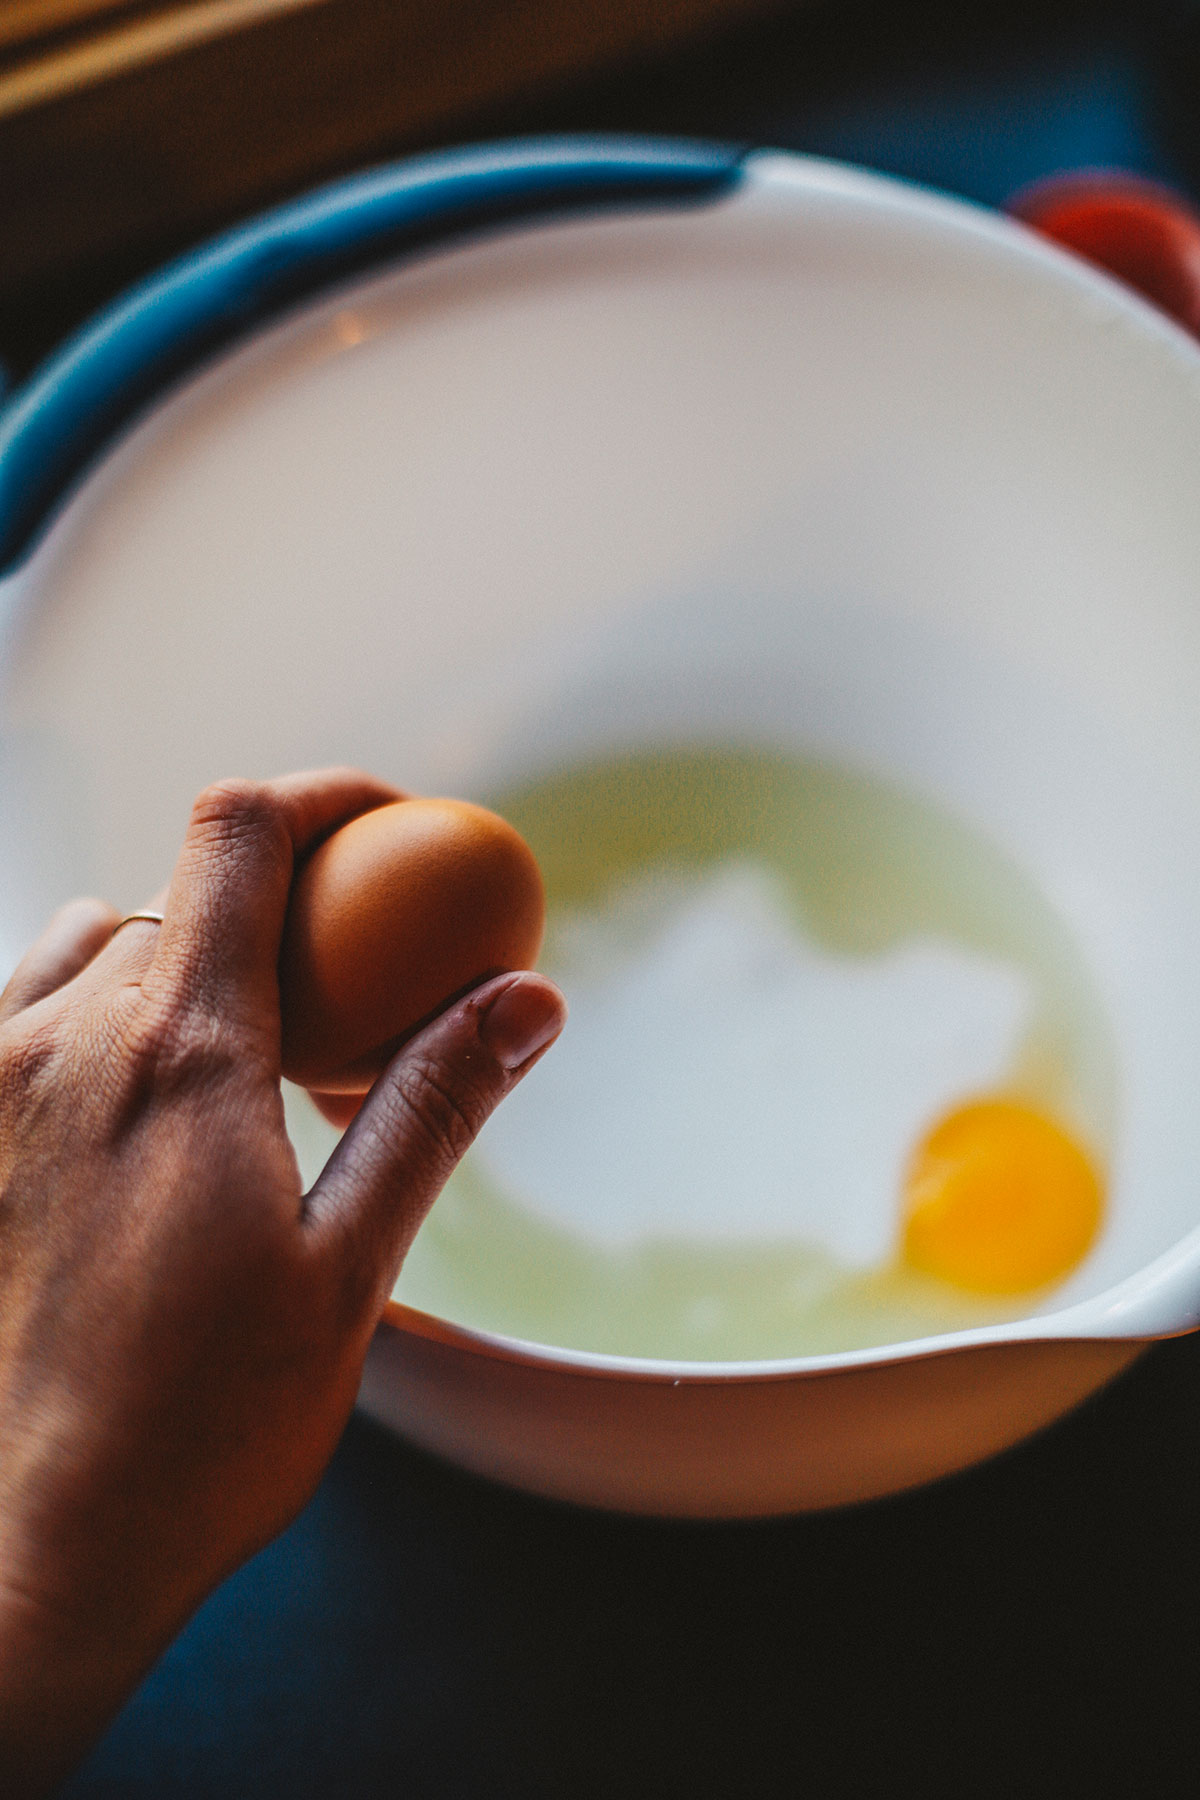 Breaking an egg into a mixing bowl